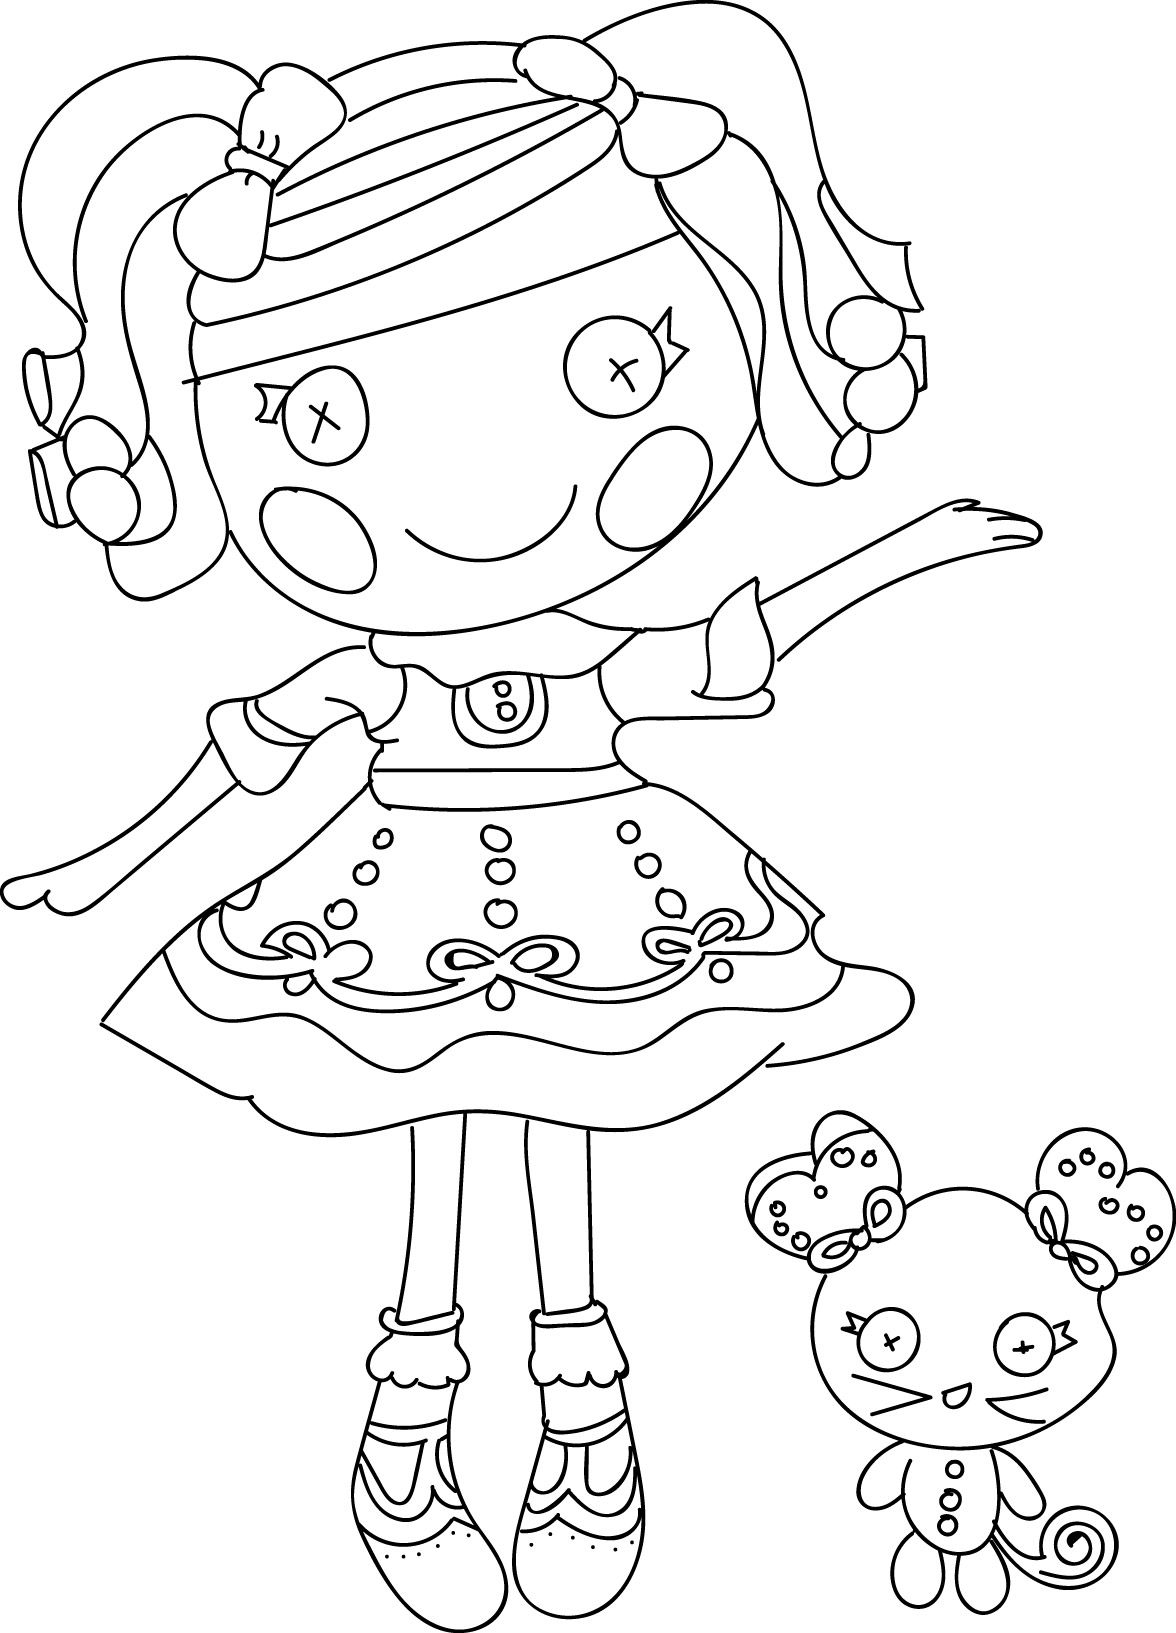 Lalaloopsy Cartoon Coloring Pages | Lalaloopsy, Cartoon and Clothing ...